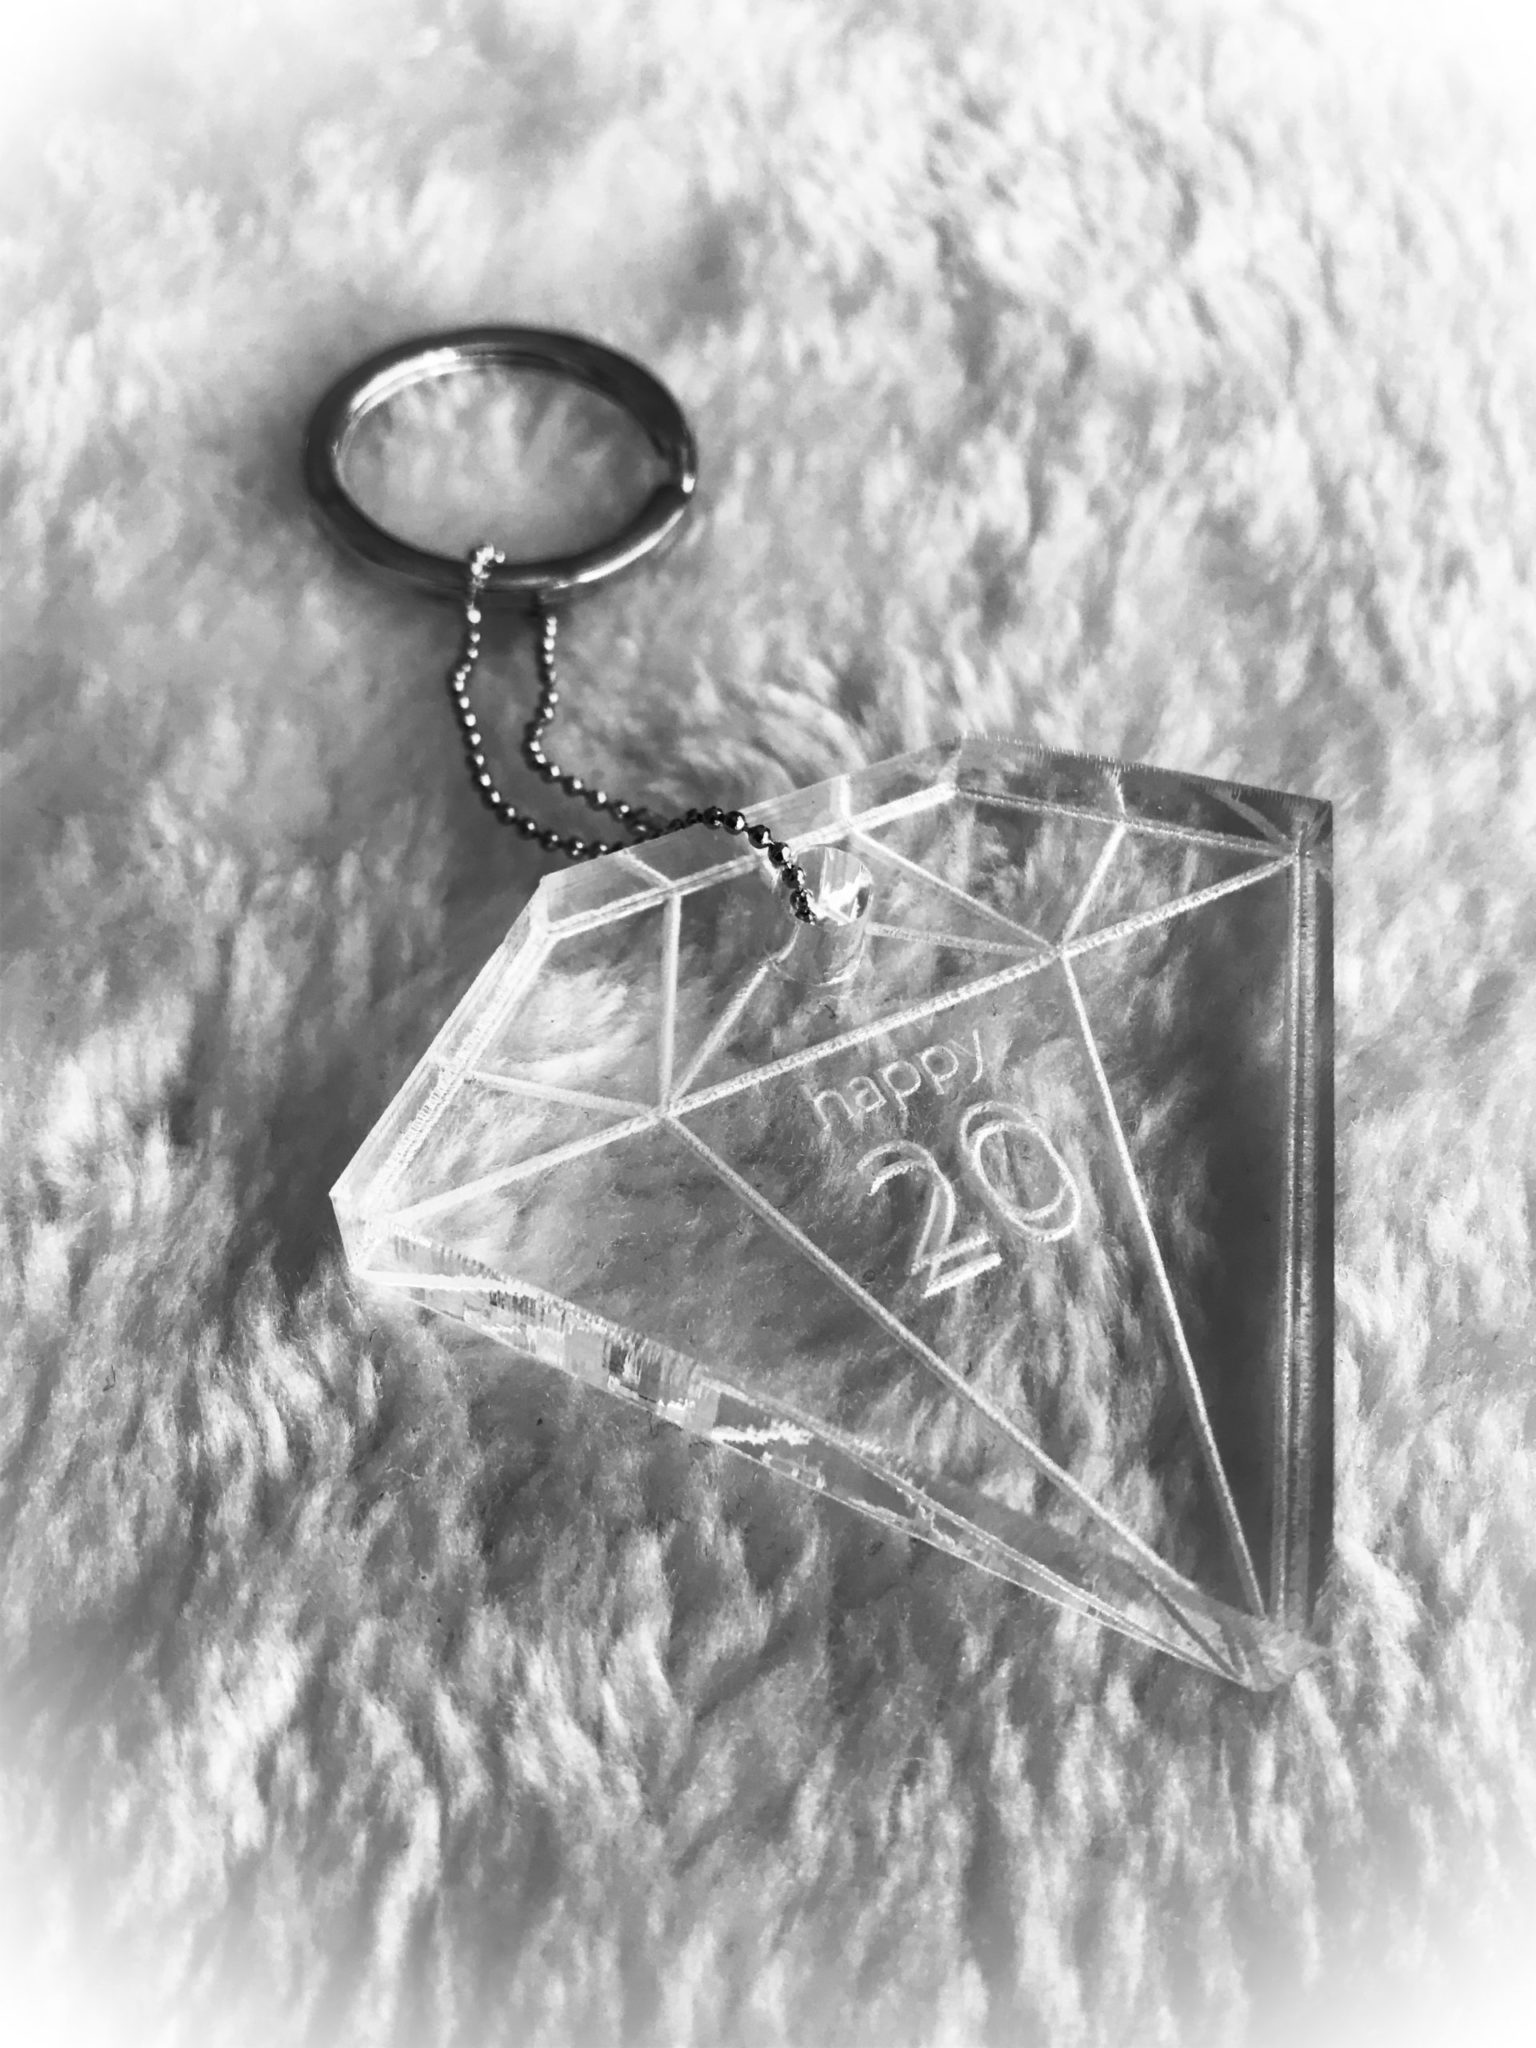 2020 Shine Bright Like A Diamond-special occasion-keychain-close up